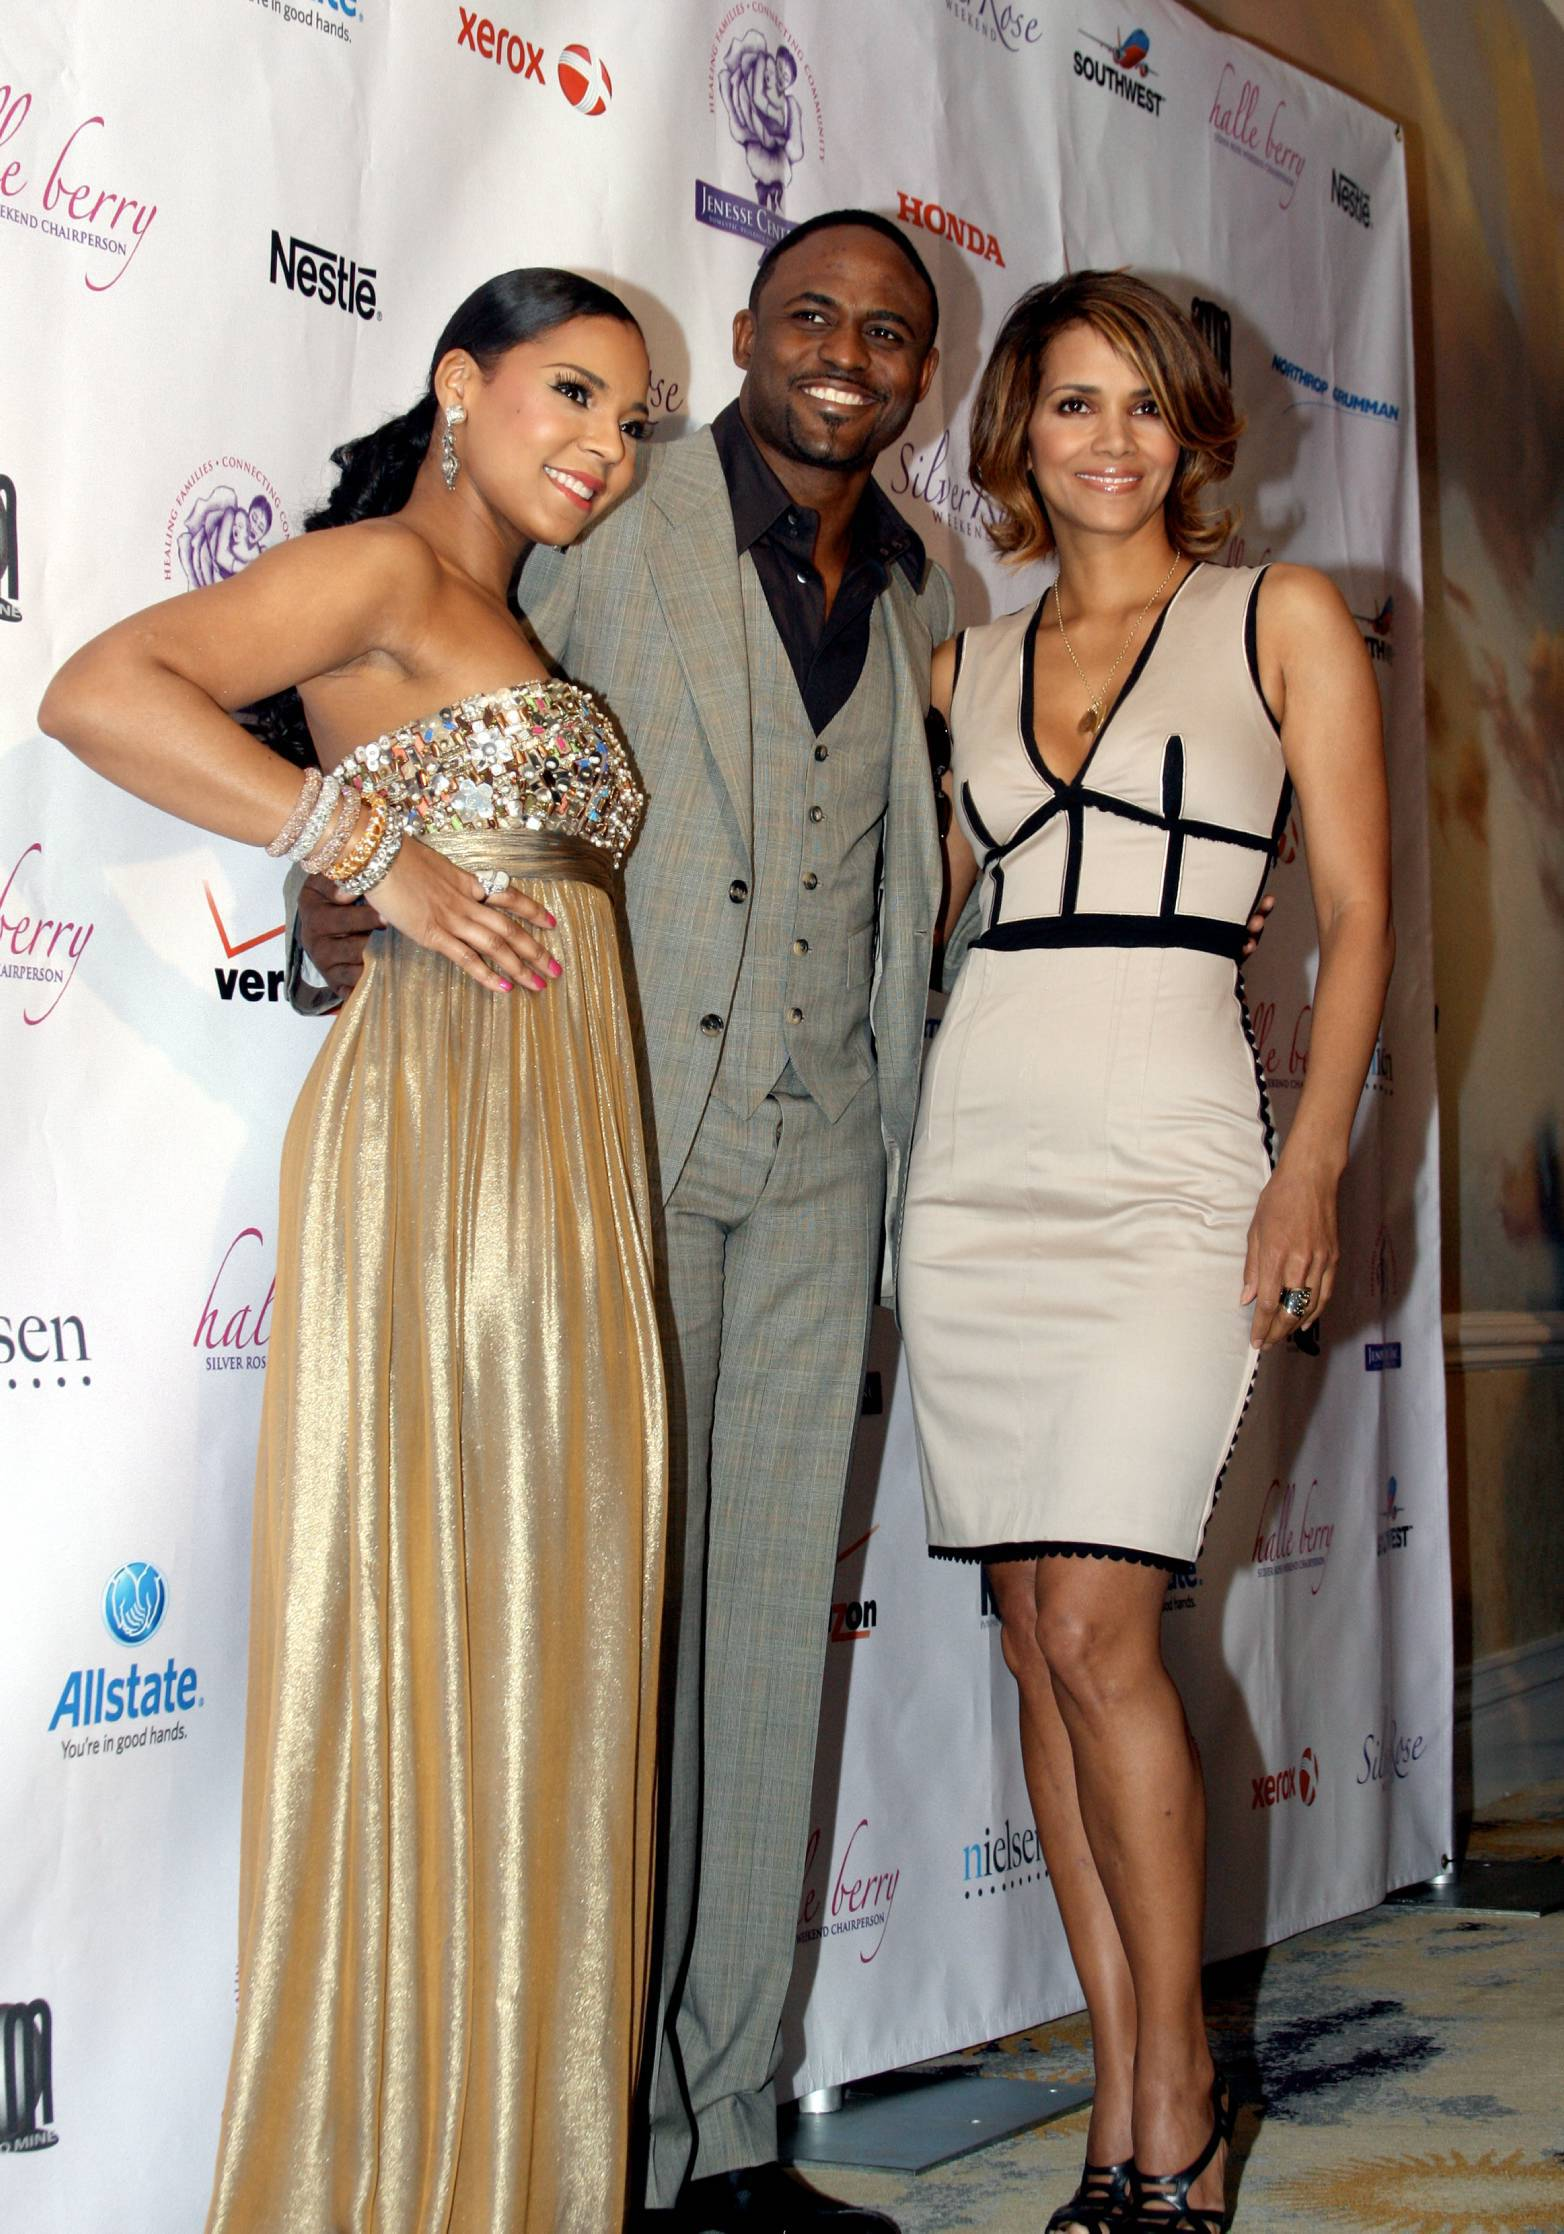 60756_Halle_Berry_2009_Jenesse_Silver_Rose_Gala_Auction_in_Beverly_Hills_109_122_668lo.jpg